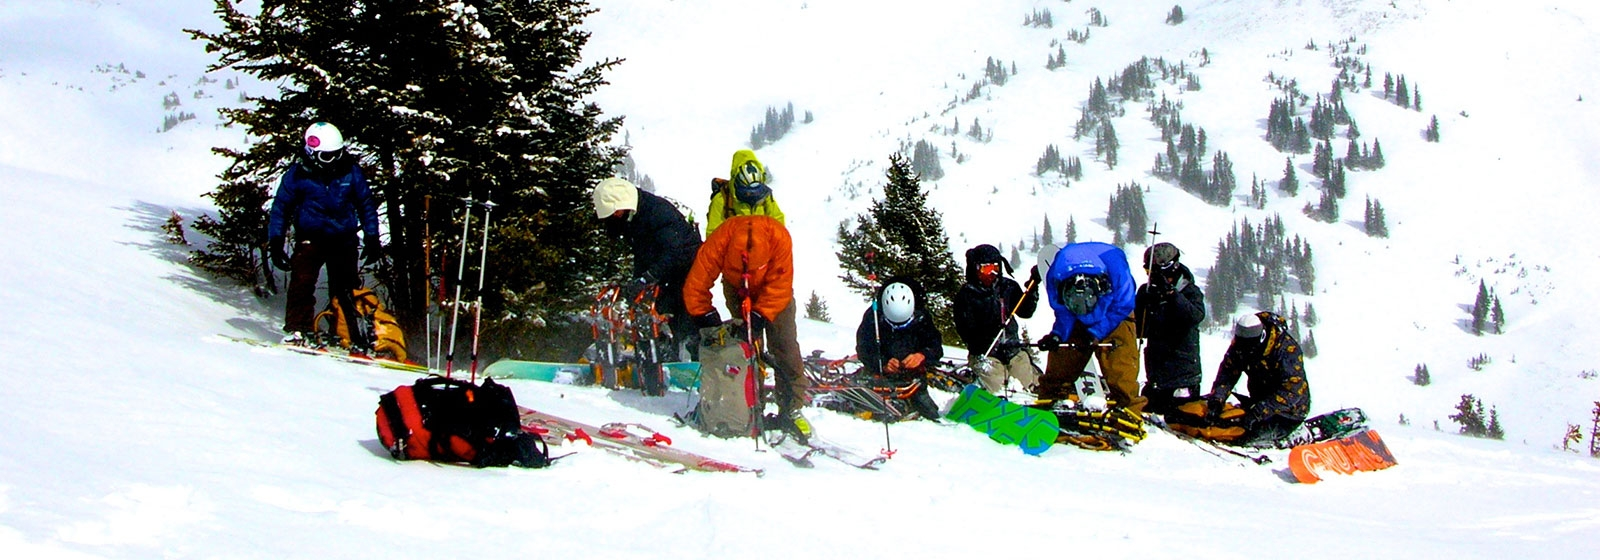 Backcountry skiing and snowboarding